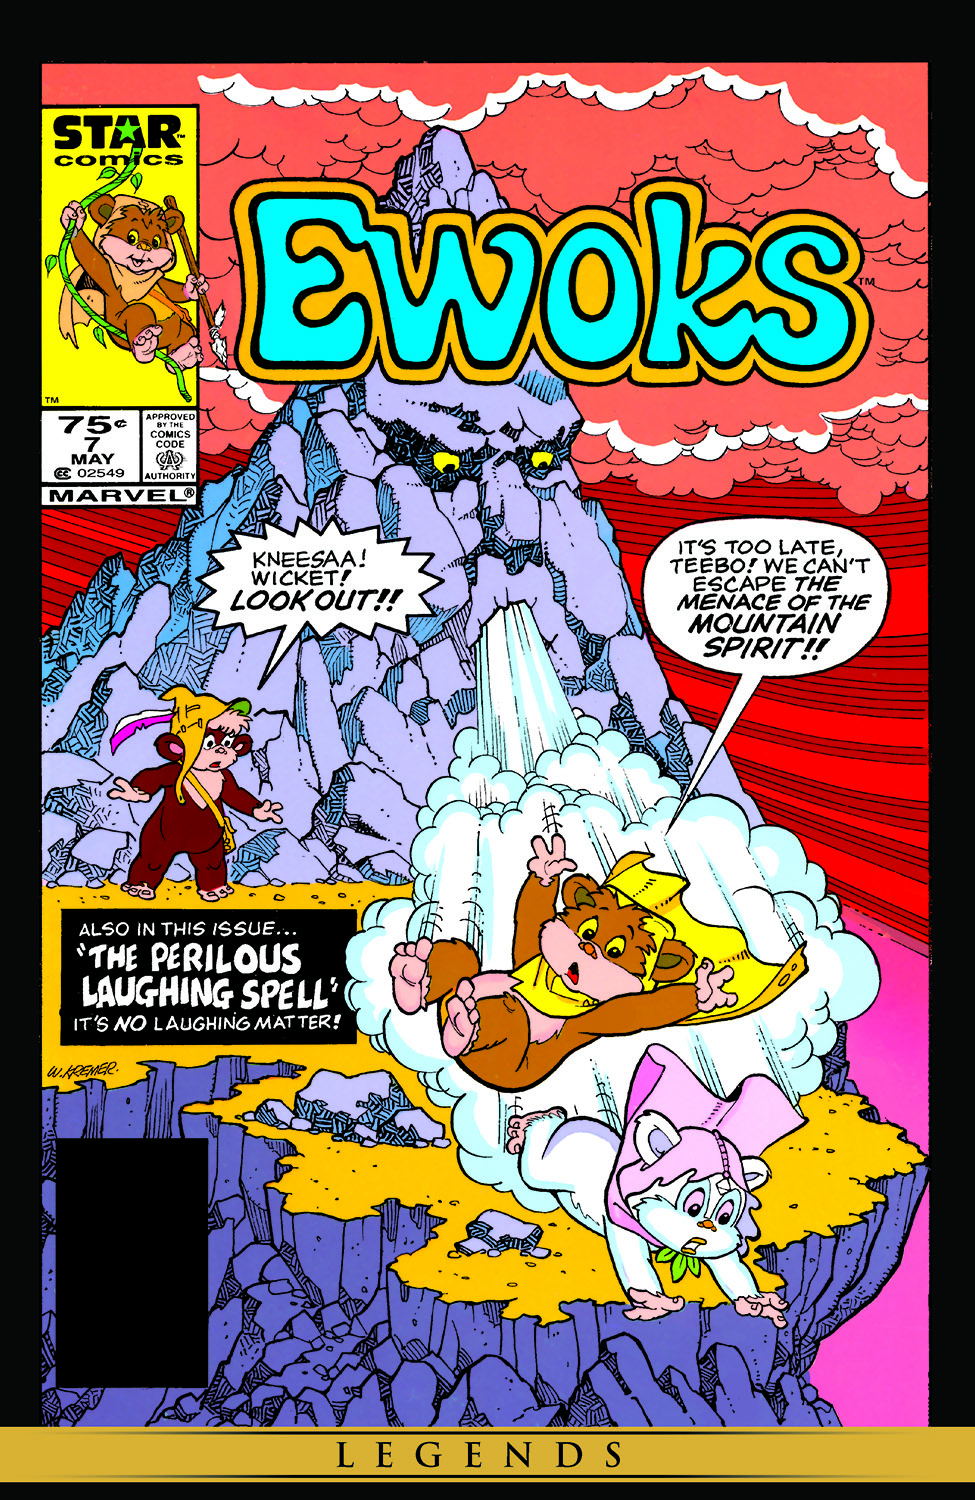 Star Wars: Ewoks (1985) #7